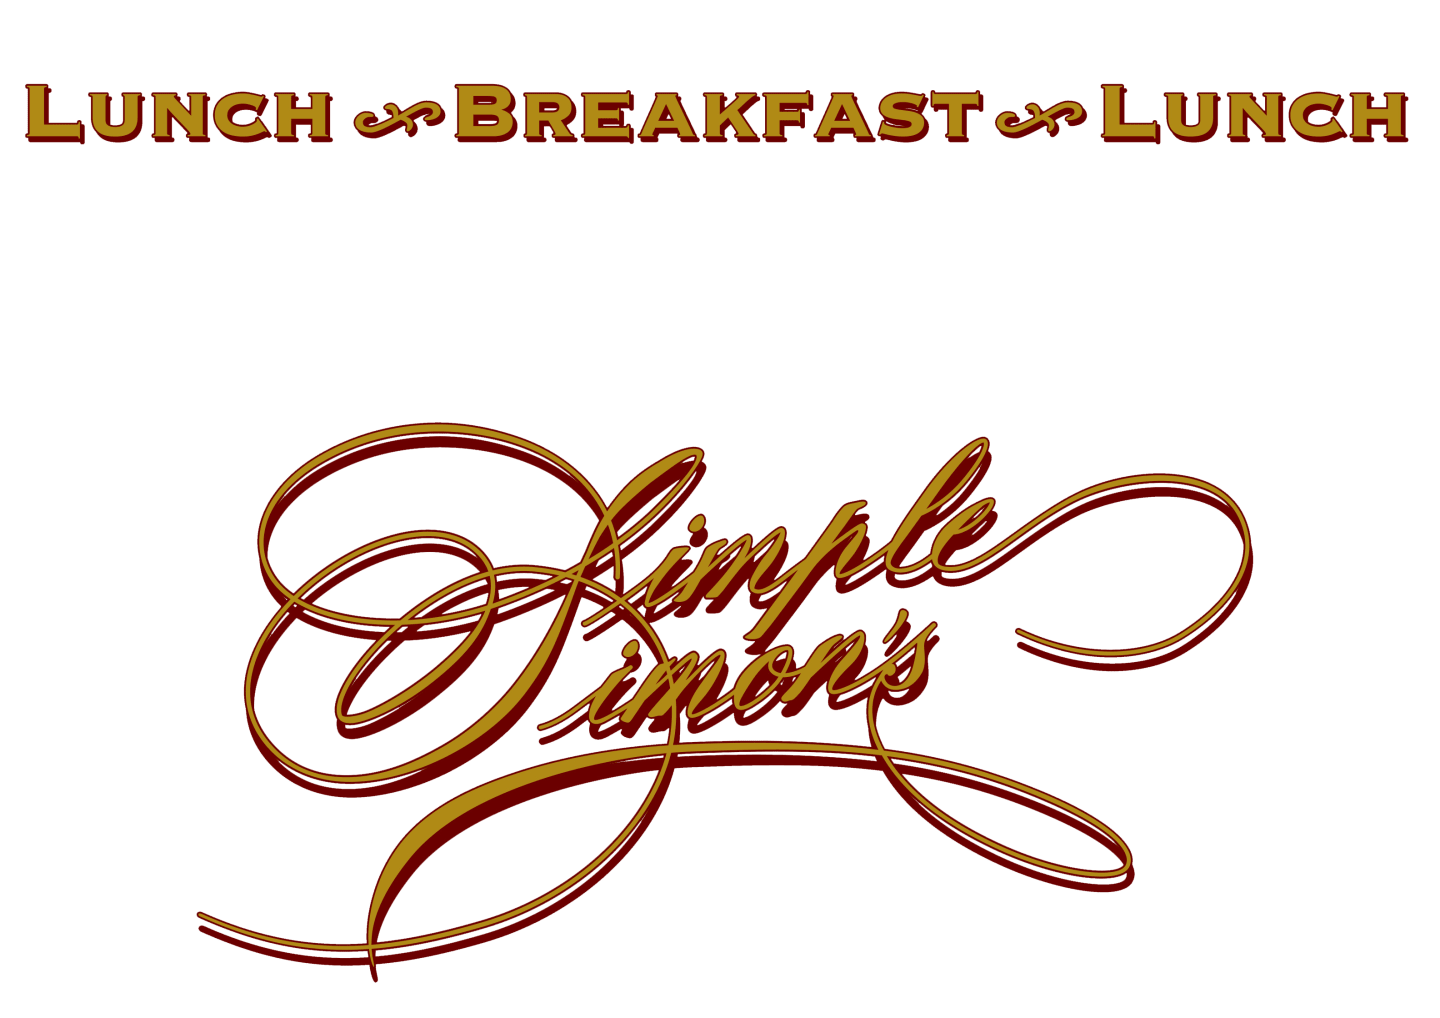 lunch breakfast lunch simple simon's logo